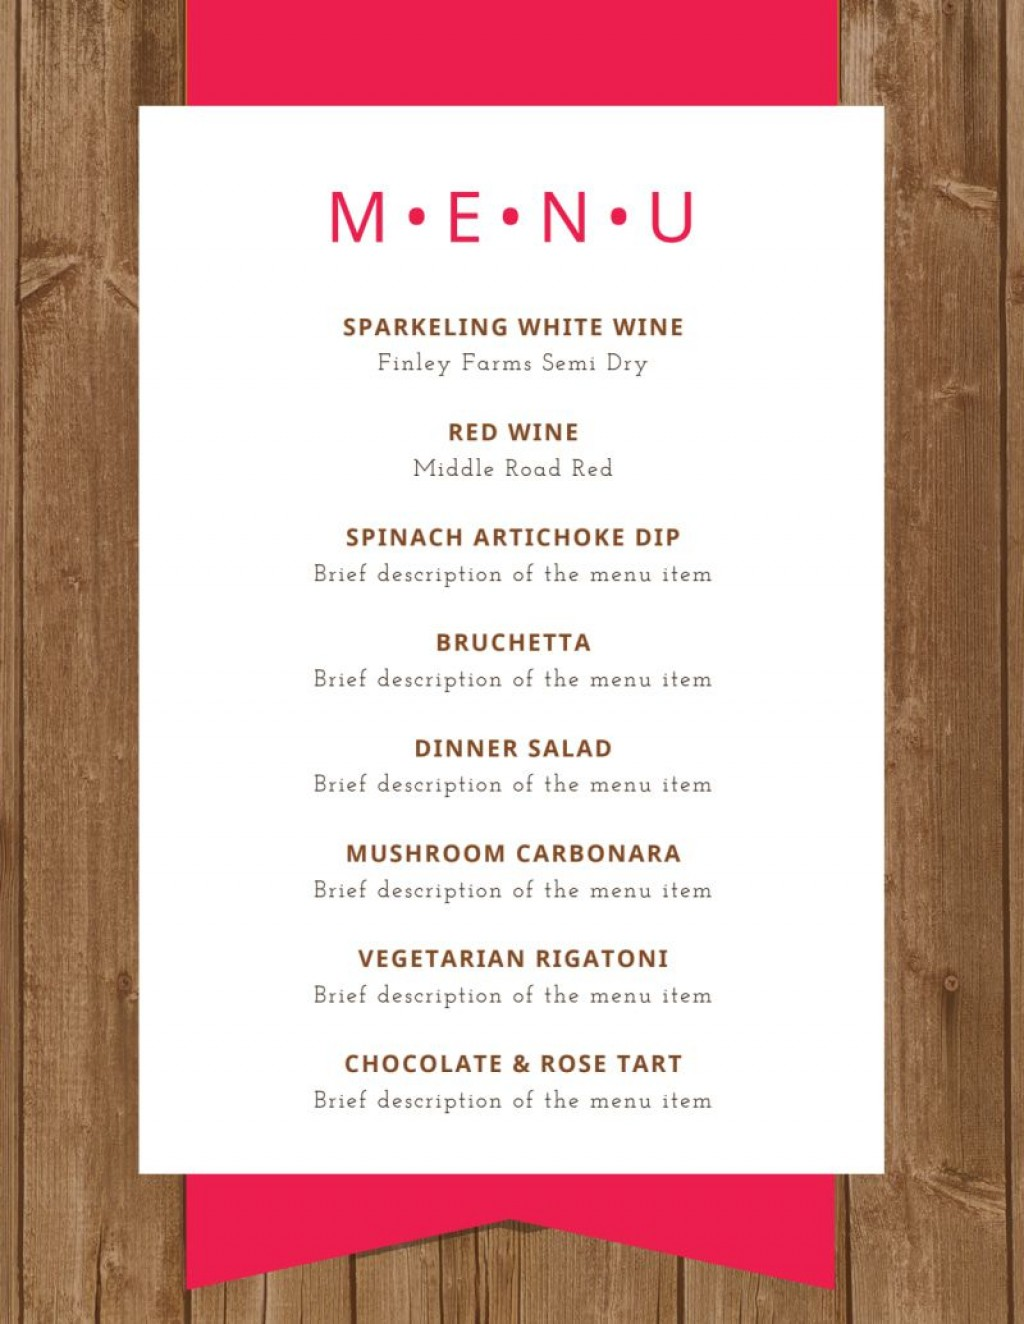 009 Awful Dinner Party Menu Template Highest Quality  Word Elegant Free Google DocLarge